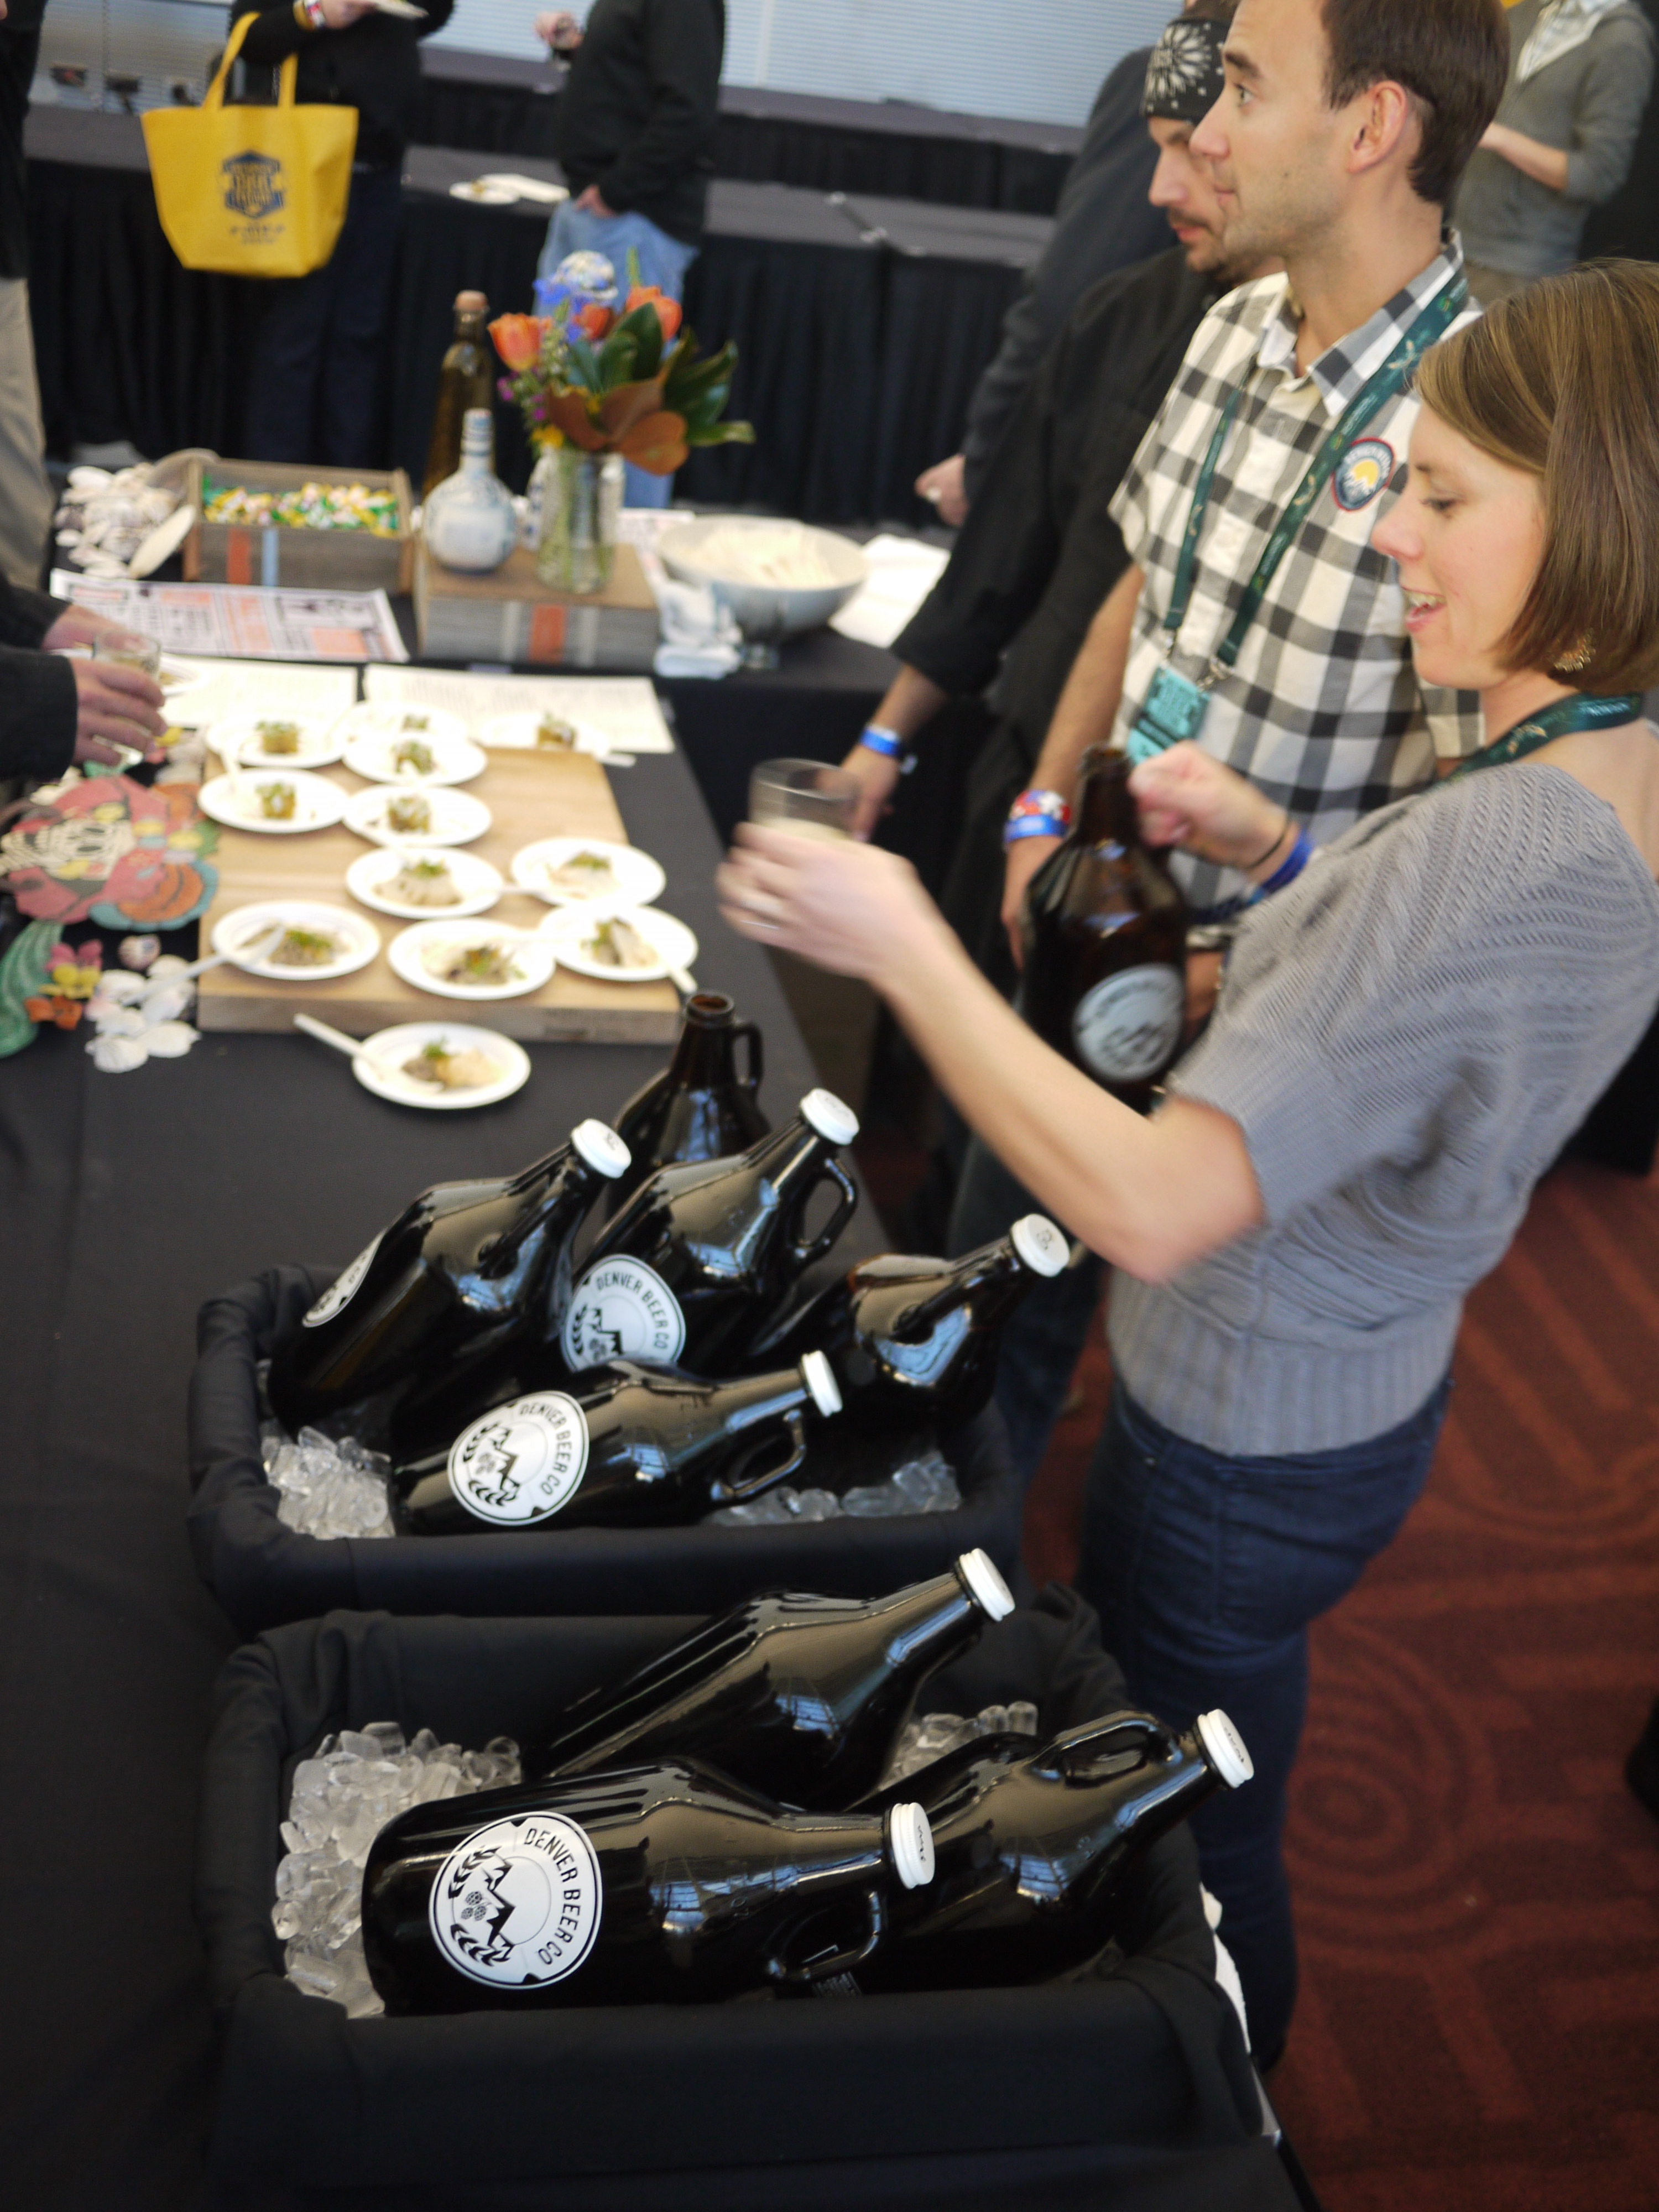 The Denver Beer Company's tasting table featured growlers of its pumpkin beer and graham cracker porter.